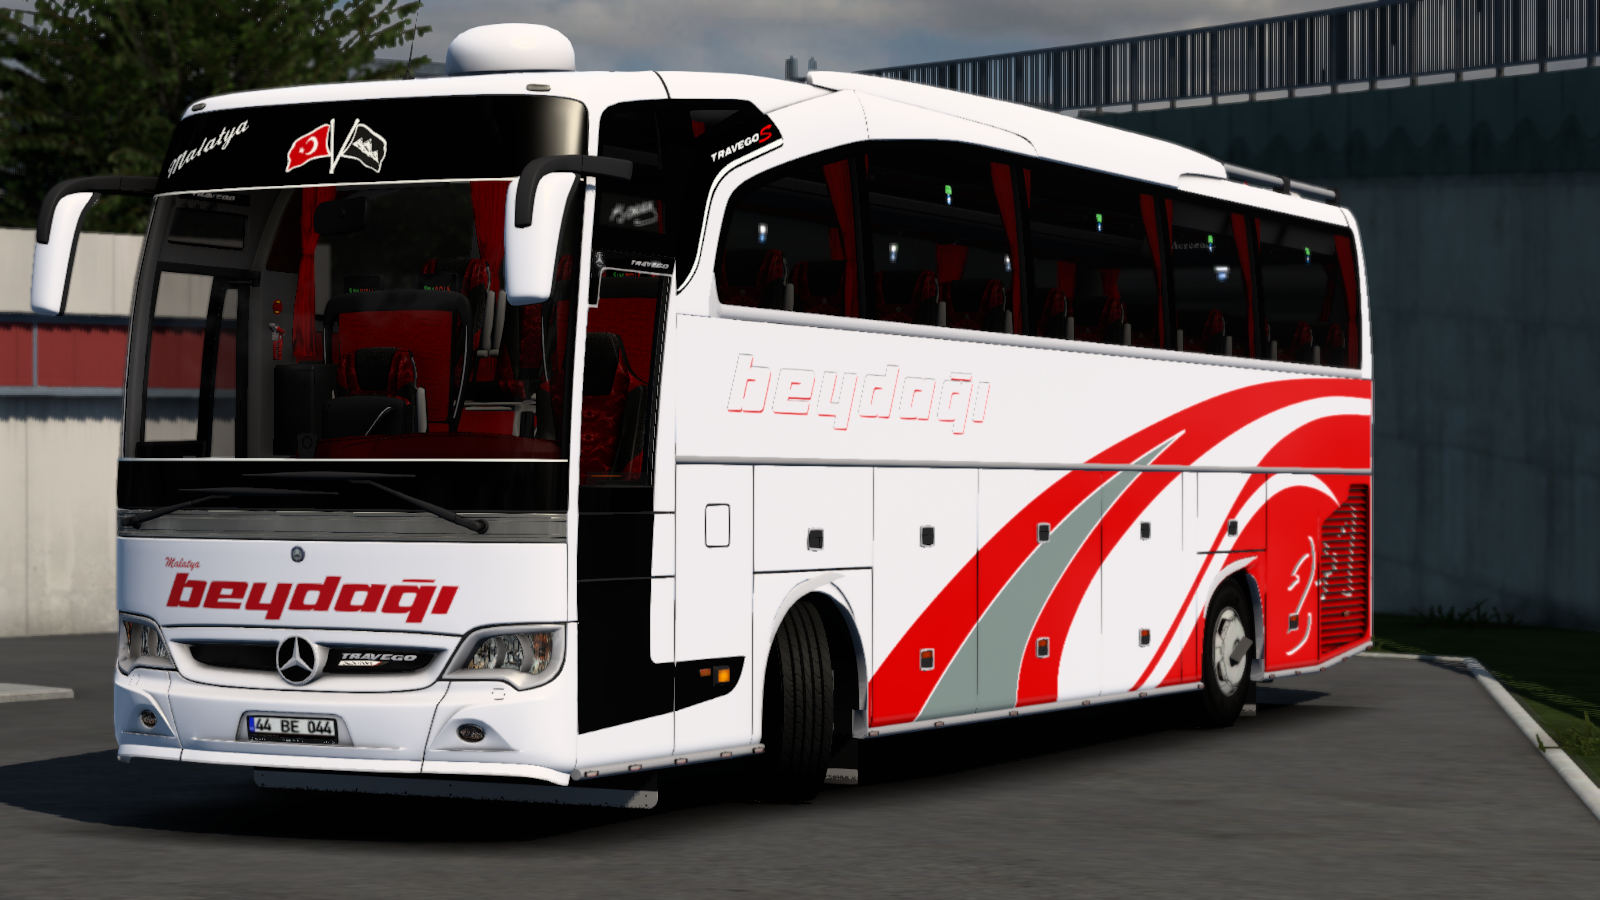 ets2_20210926_221055_00.png